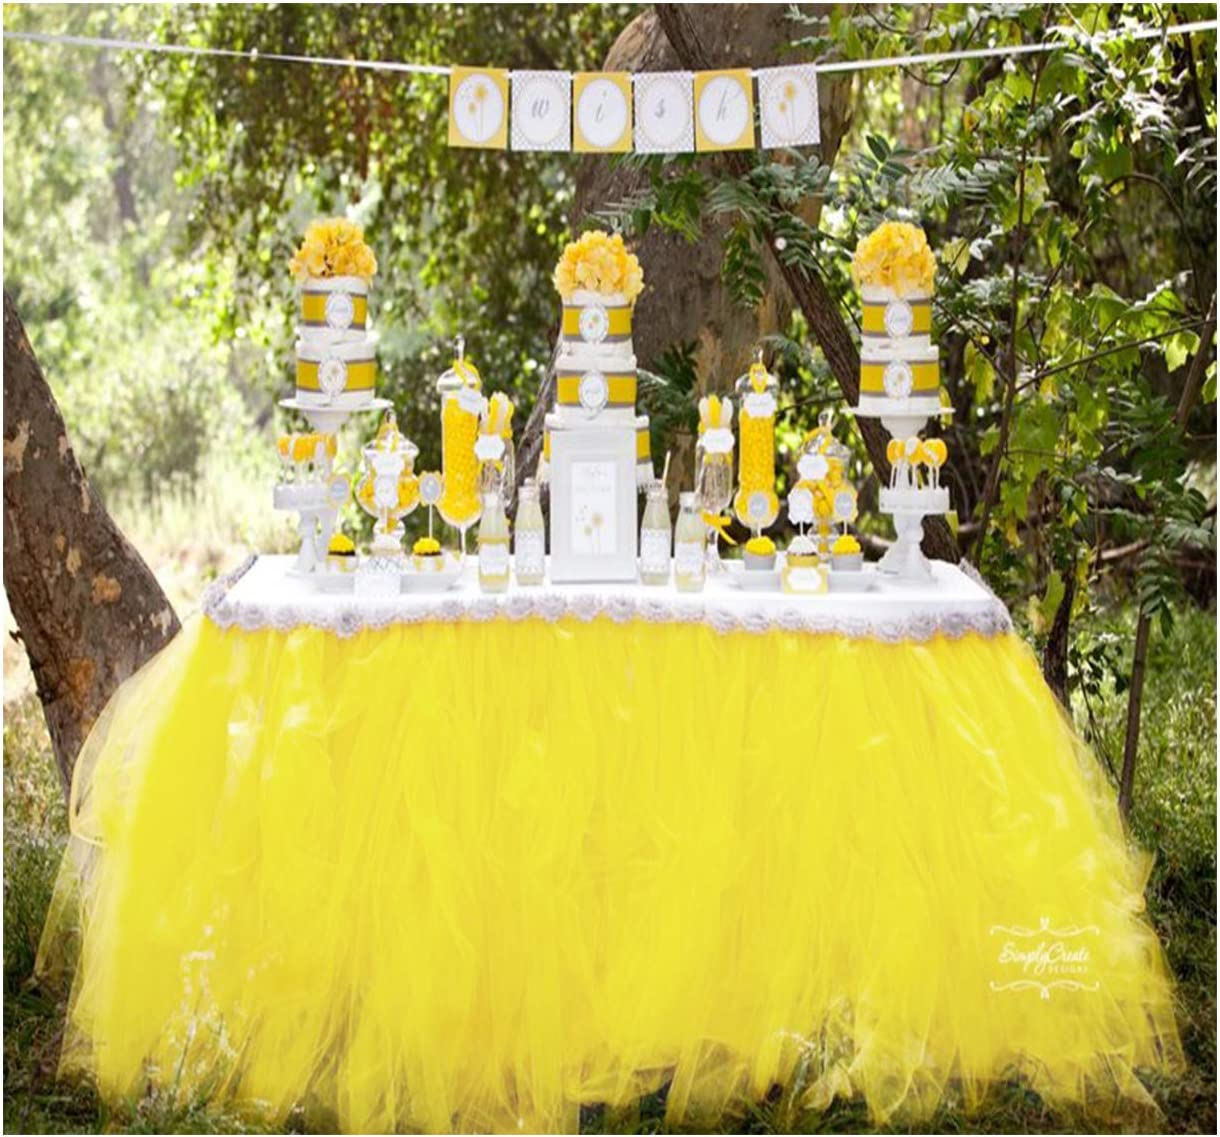 Tutu Table Skirt Fluffy Tulle Lace Table Skirting for Rectangle or Round Tablecloth Party Decoration 1 Yard (Lemon Yellow)